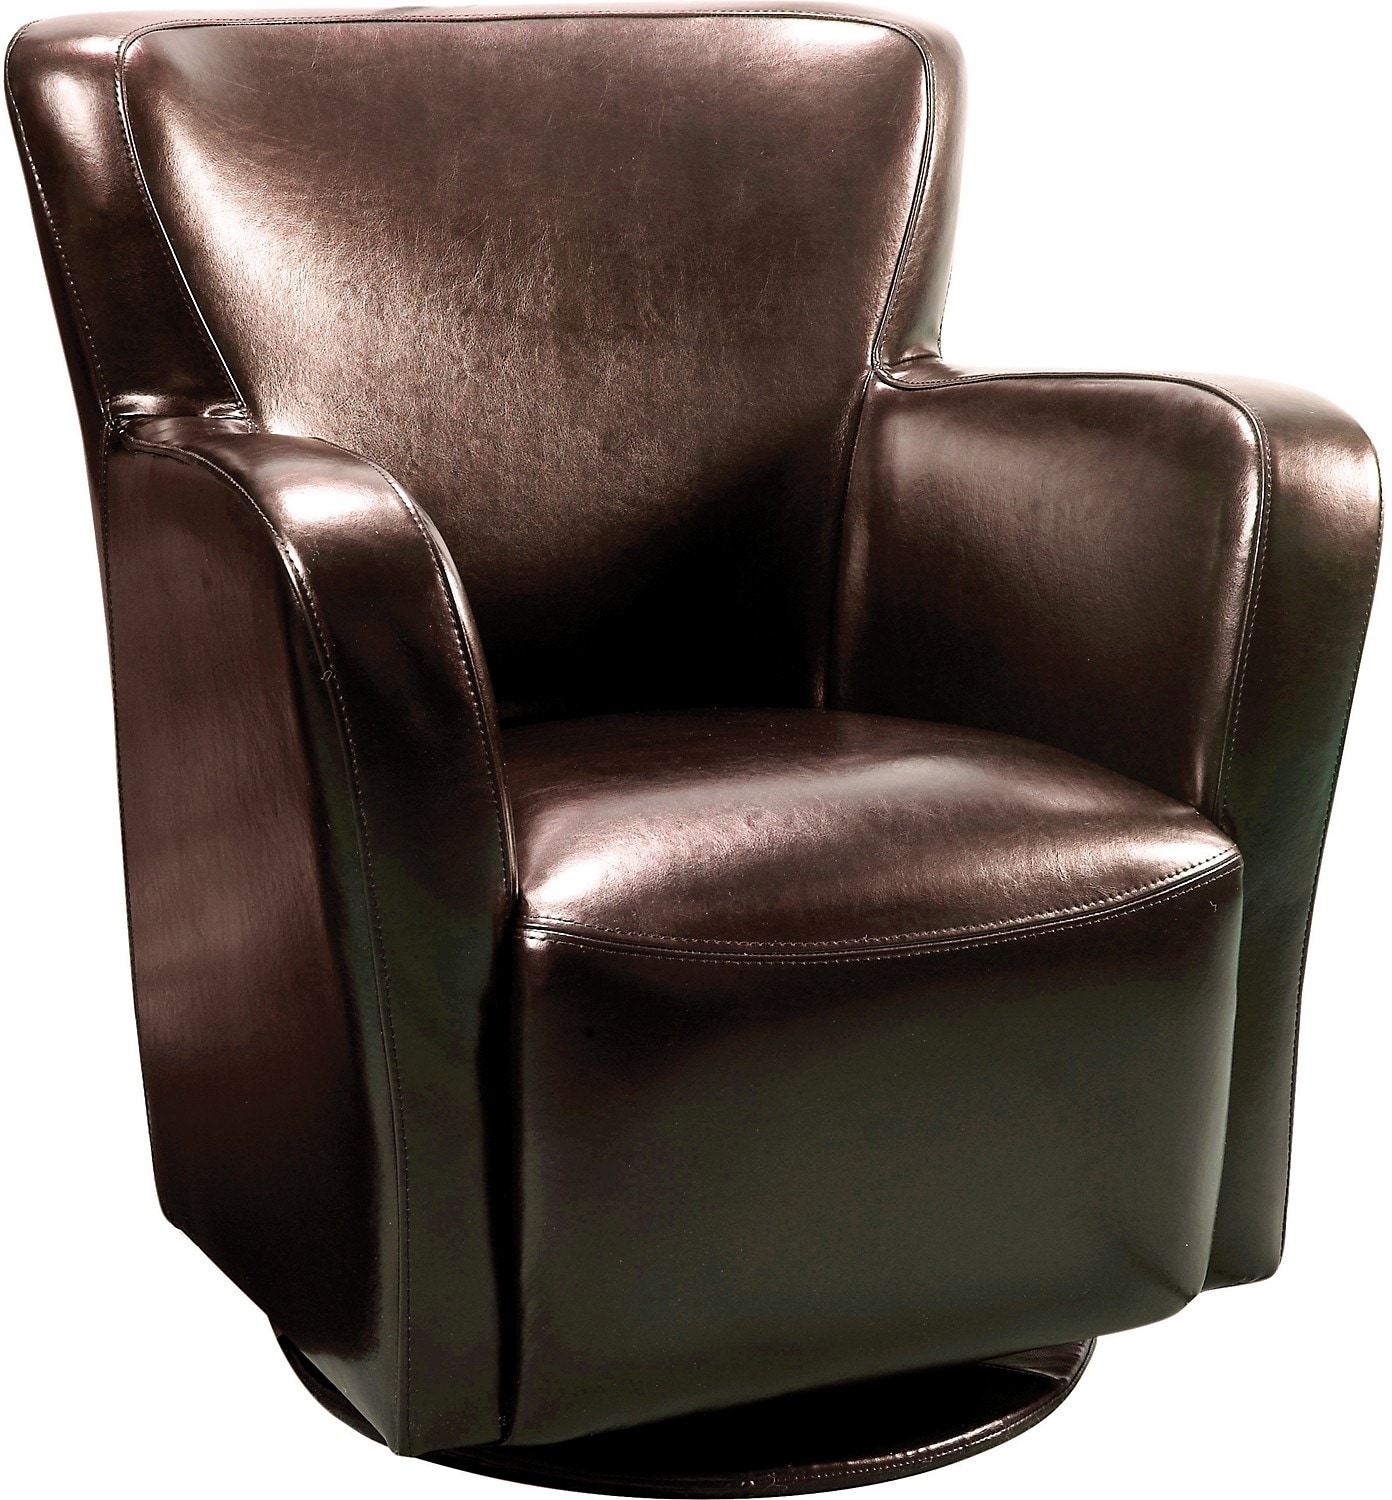 Living Room Furniture - Bonded Leather Swivel Chair - Brown